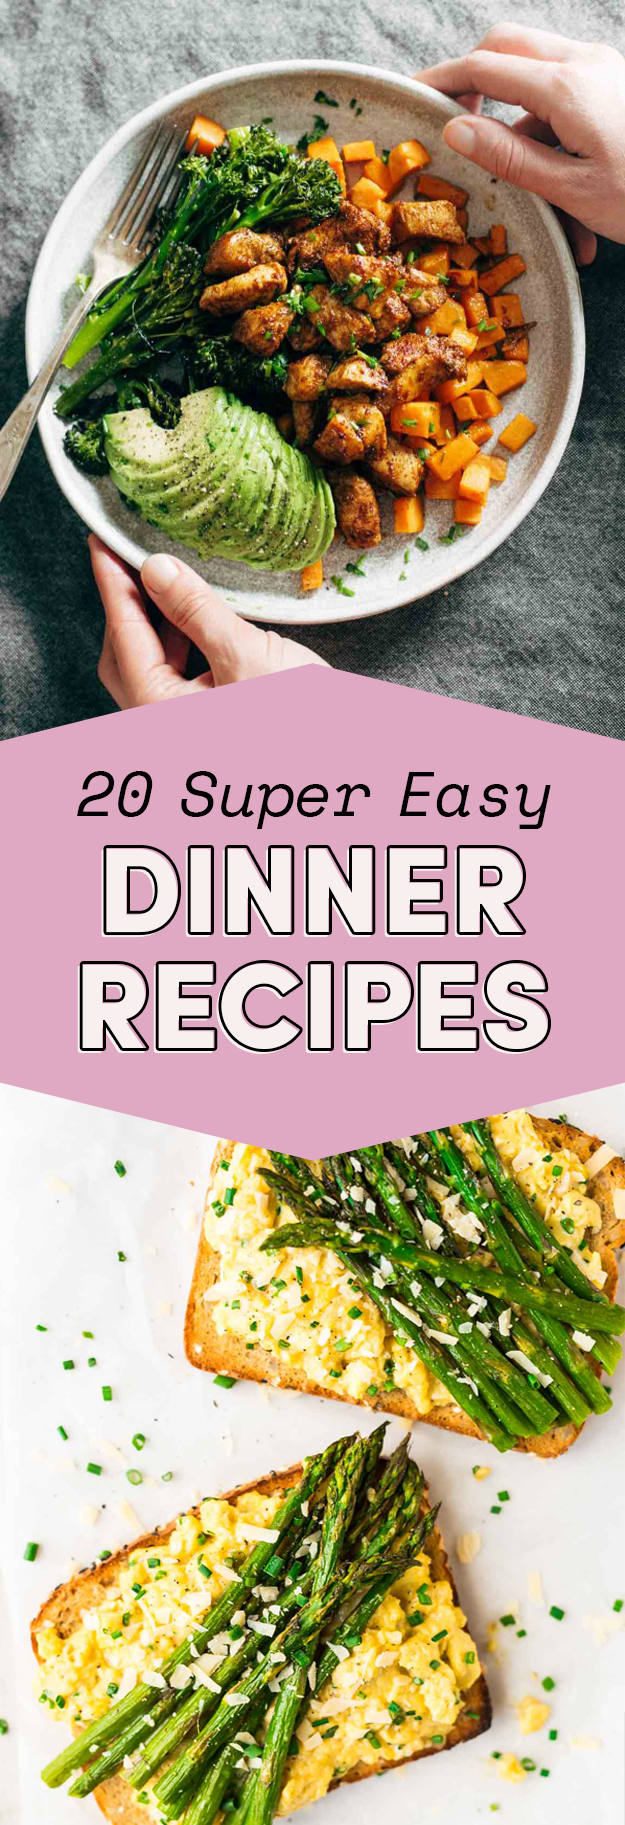 20 Easy Dinner Ideas For When You Re Not Sure What To Make Super Easy Dinner Recipes Easy Dinner